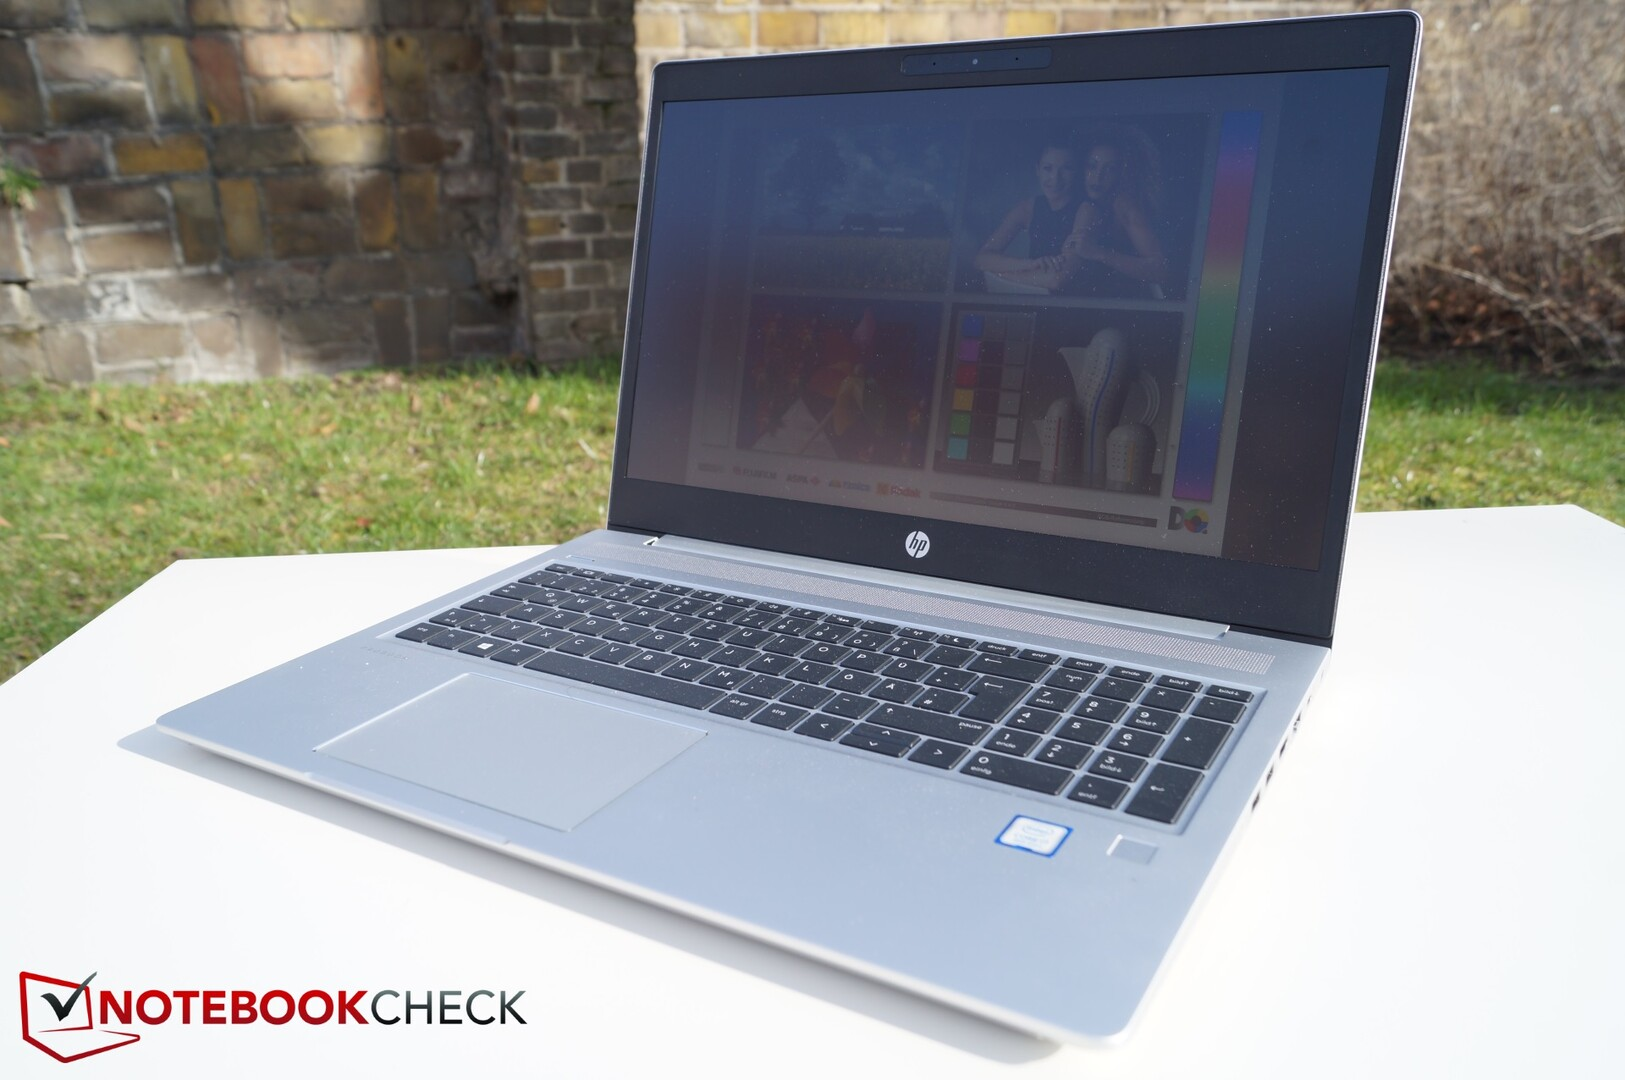 Hp pavilion g6 review uk dating